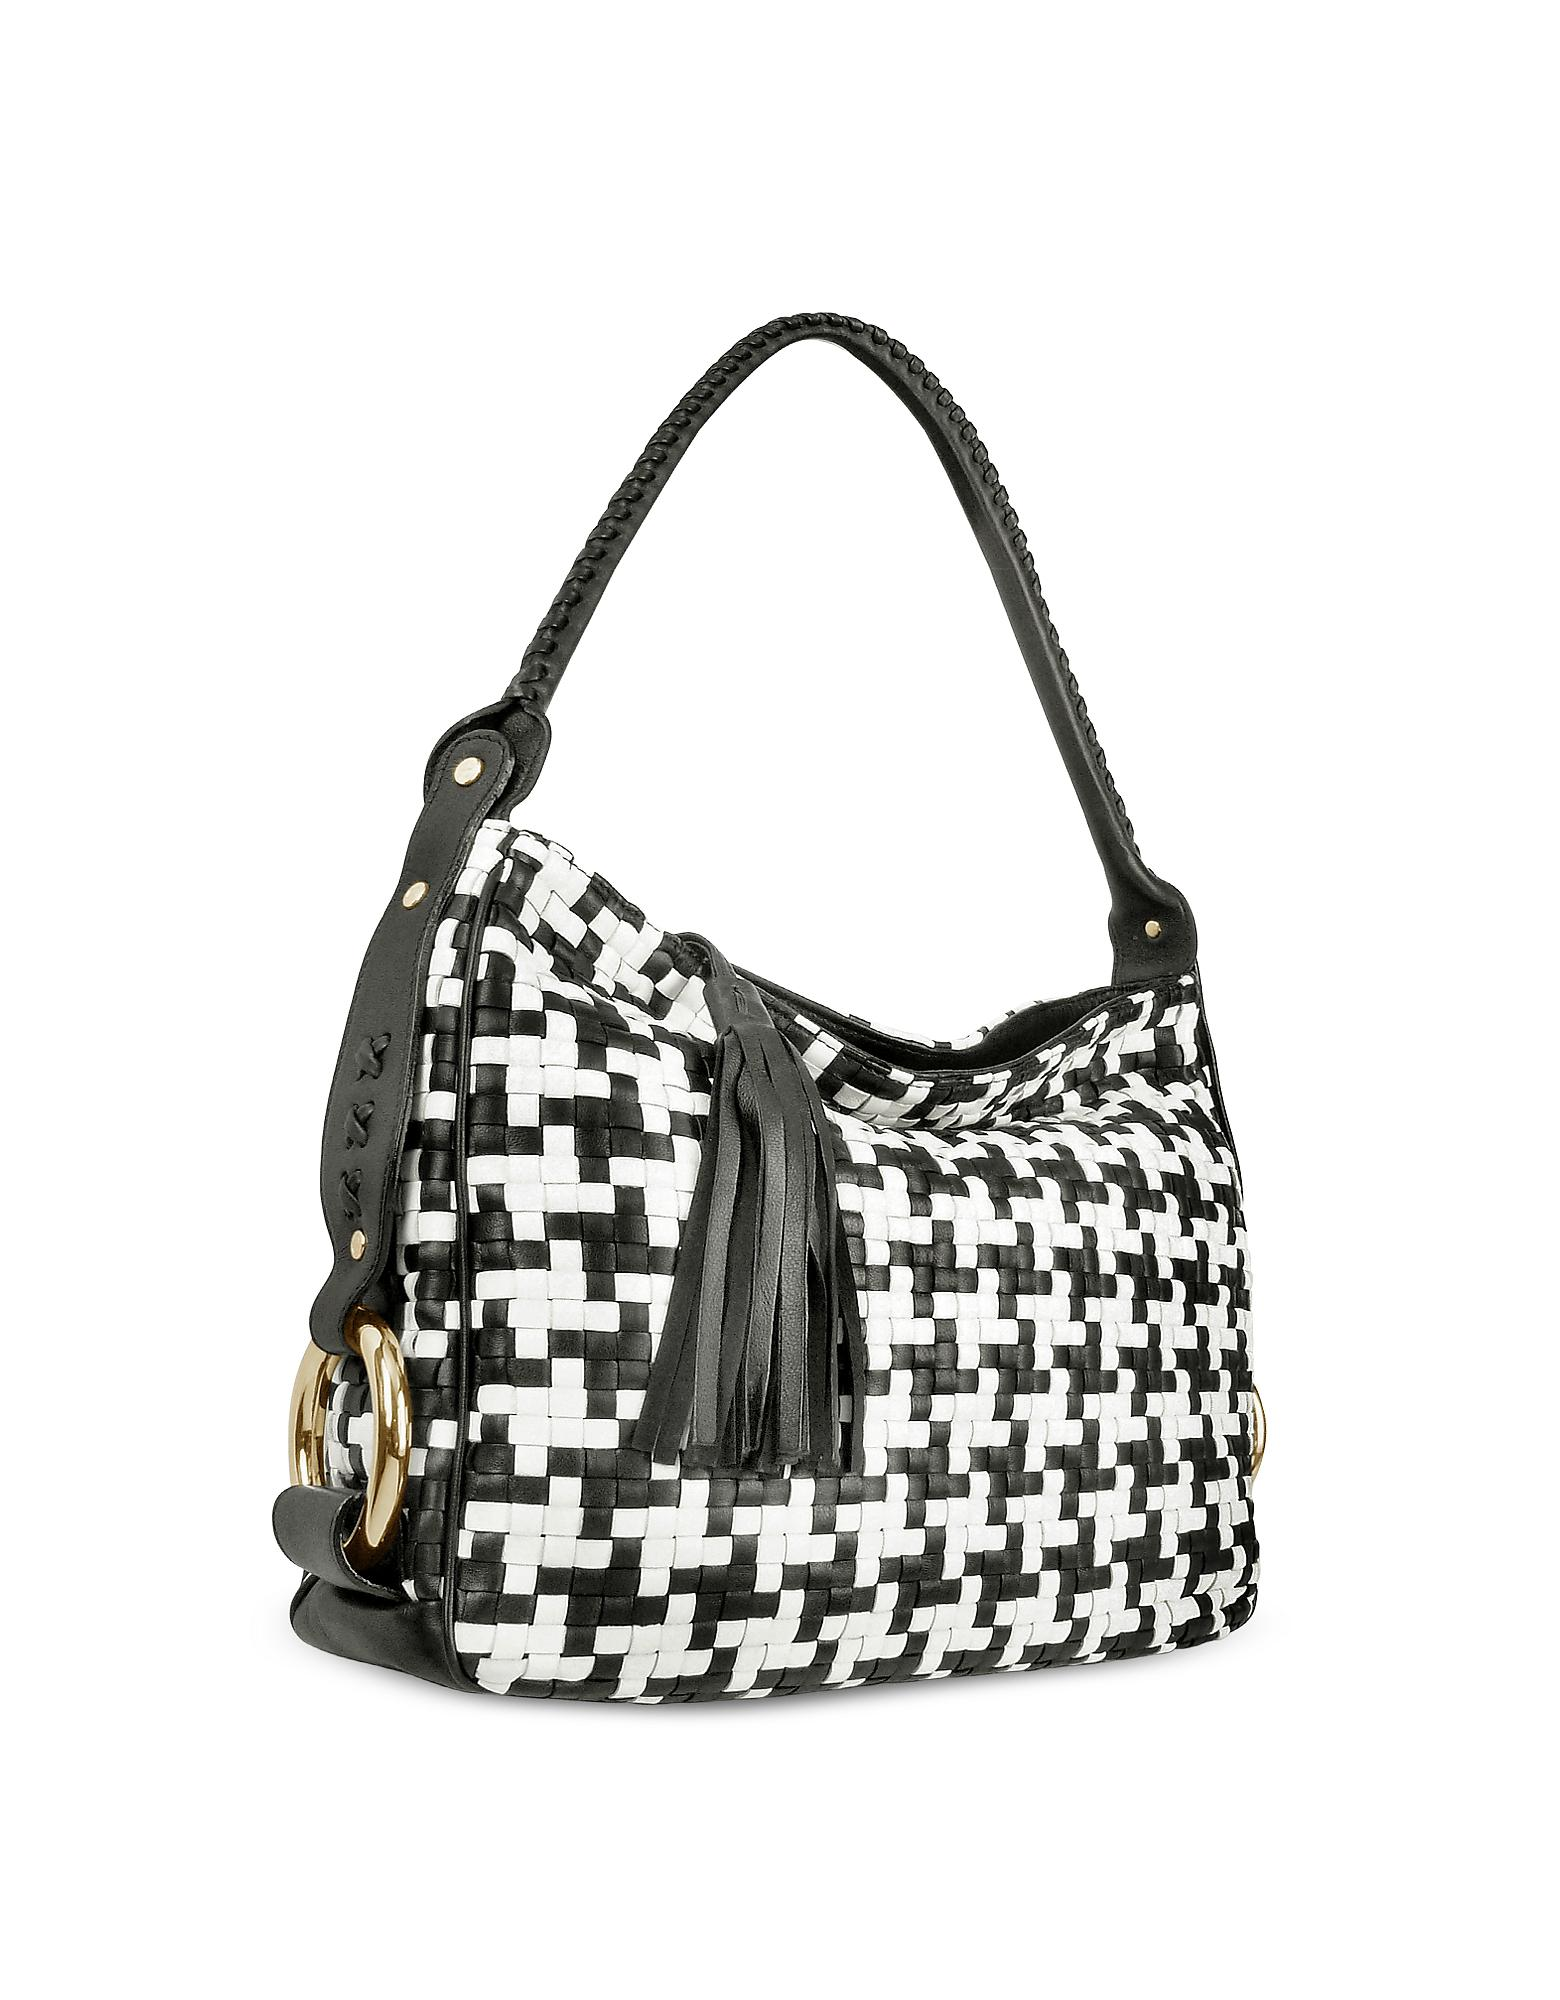 602e0668c38 Lyst - Fontanelli Black And White Houndstooth Woven Leather Tote Bag ...